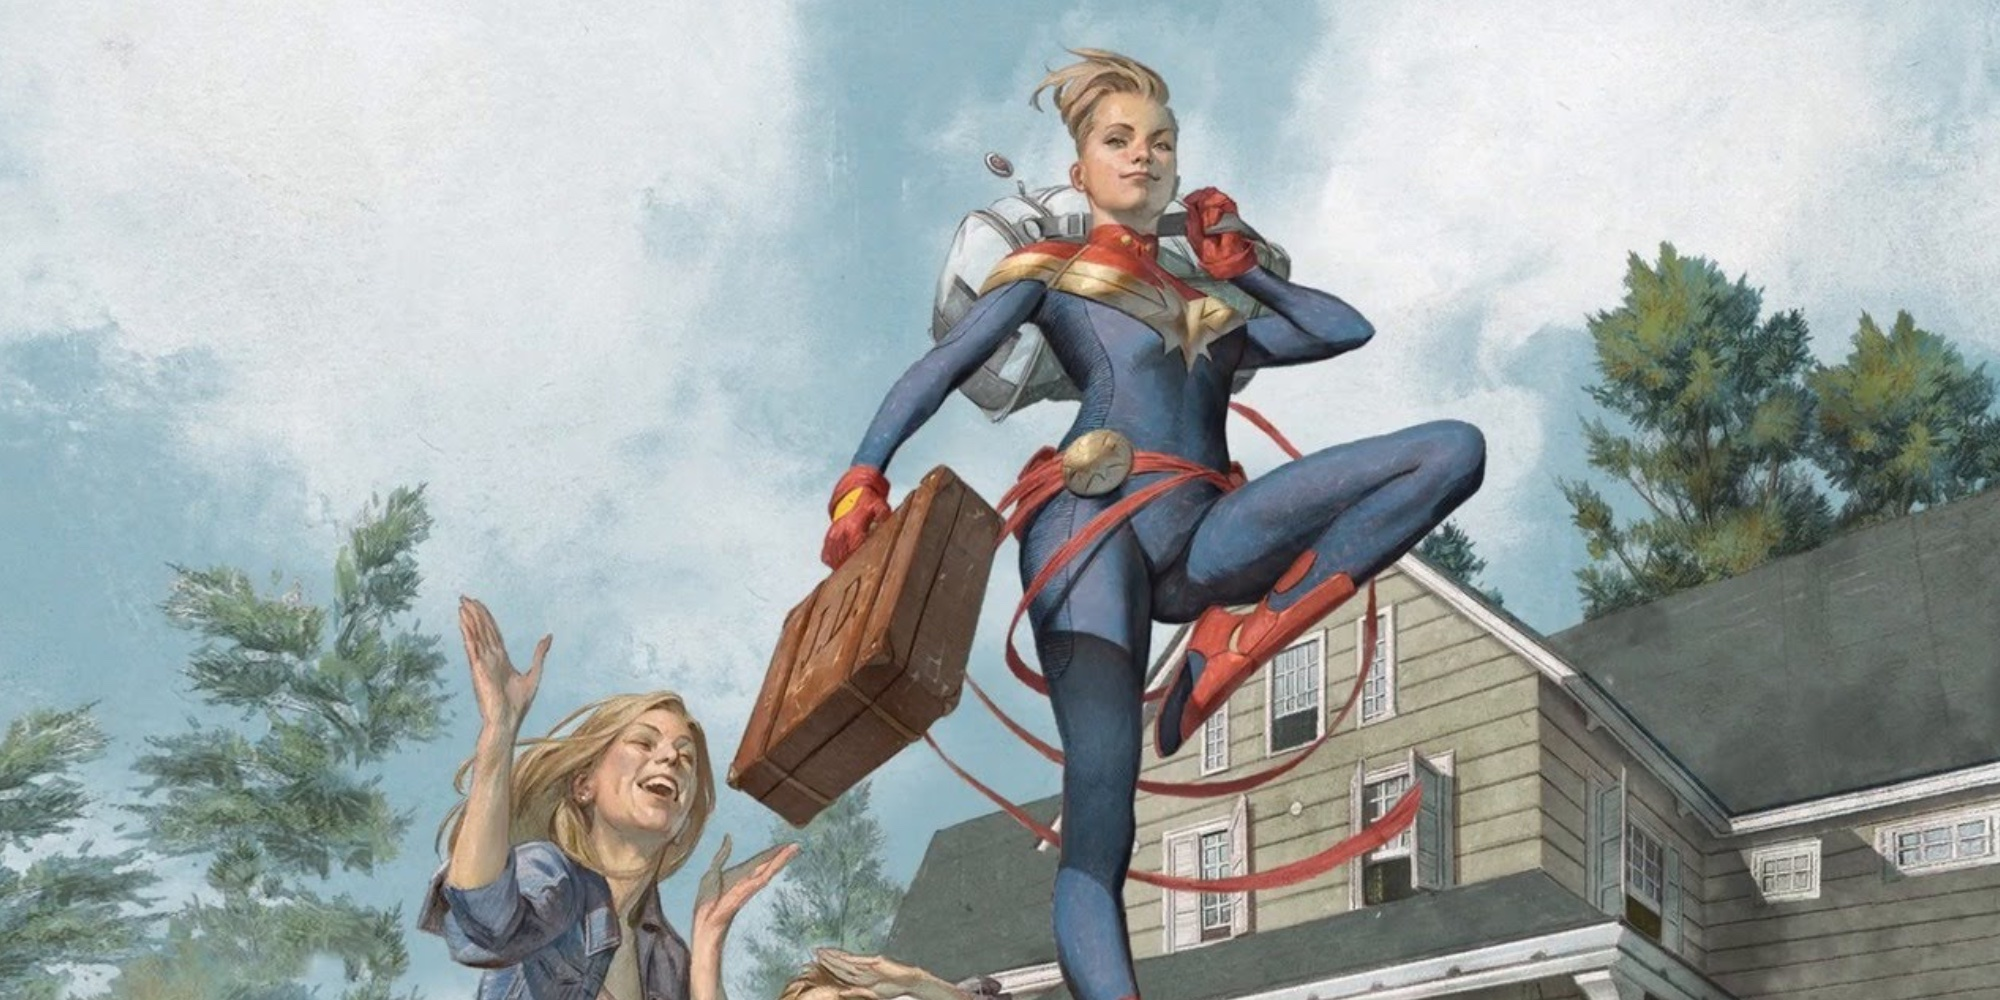 Save up to 67% on Avengers, Captain Marvel, X-Men, and other comics from $1